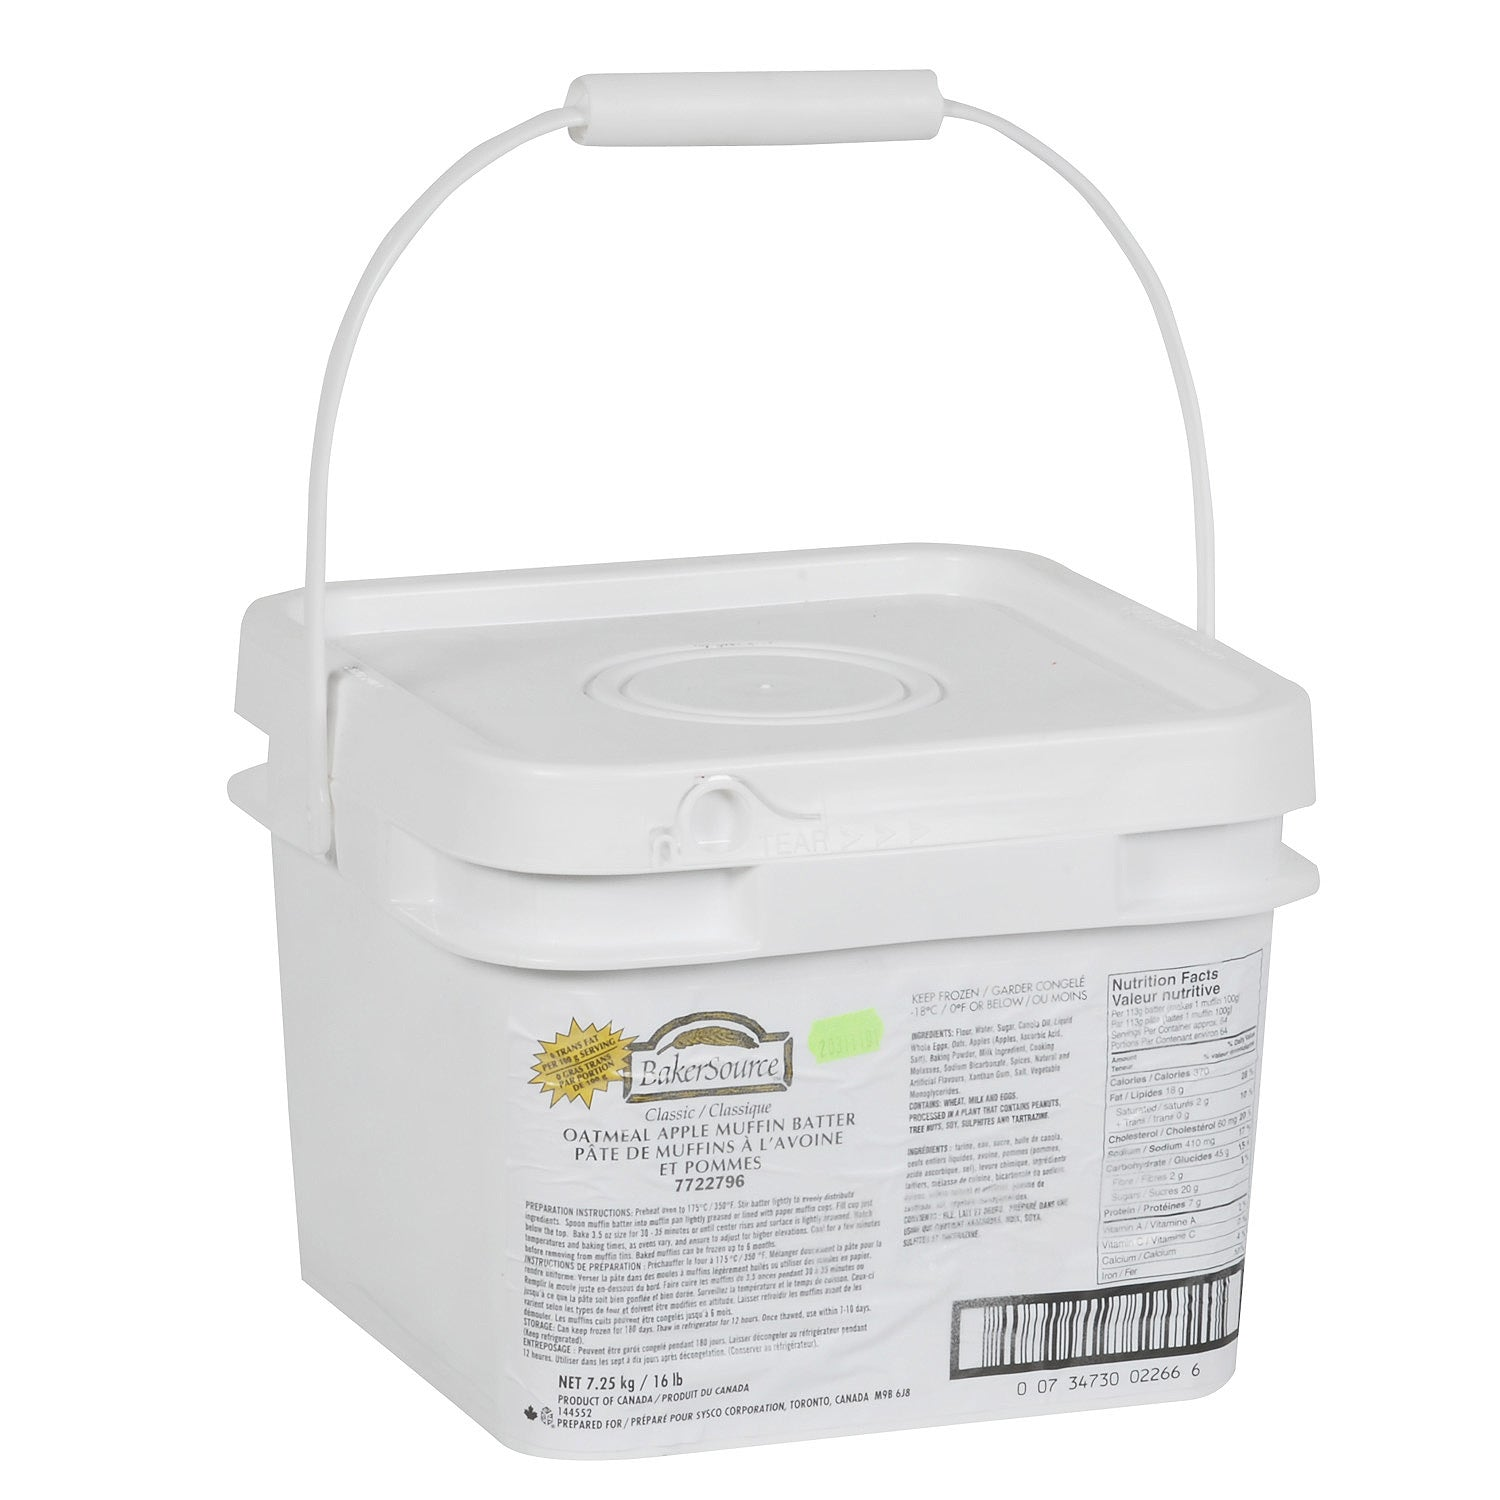 Sysco Baker's Source Frozen Apple Oatmeal Muffin Batter 7.25 kg - 1 Pack [$4.14/kg]